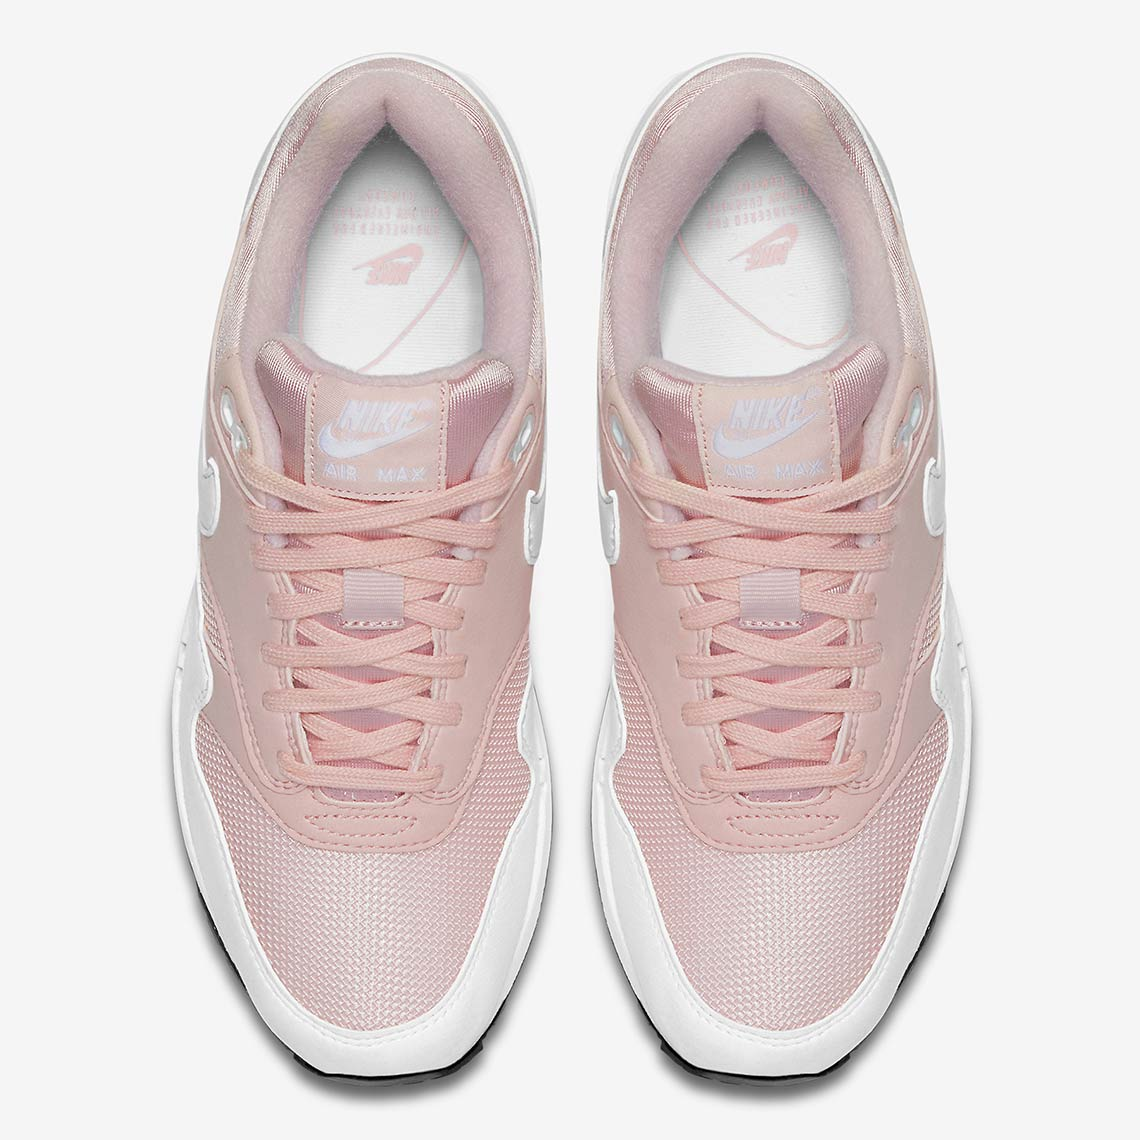 27ccb79f2e9d5 Nike Air Max 1. Release Date: May 2018 $110. Color: Barely Rose/White-Black  Style Code: 319986-607. Advertisement. Advertisement